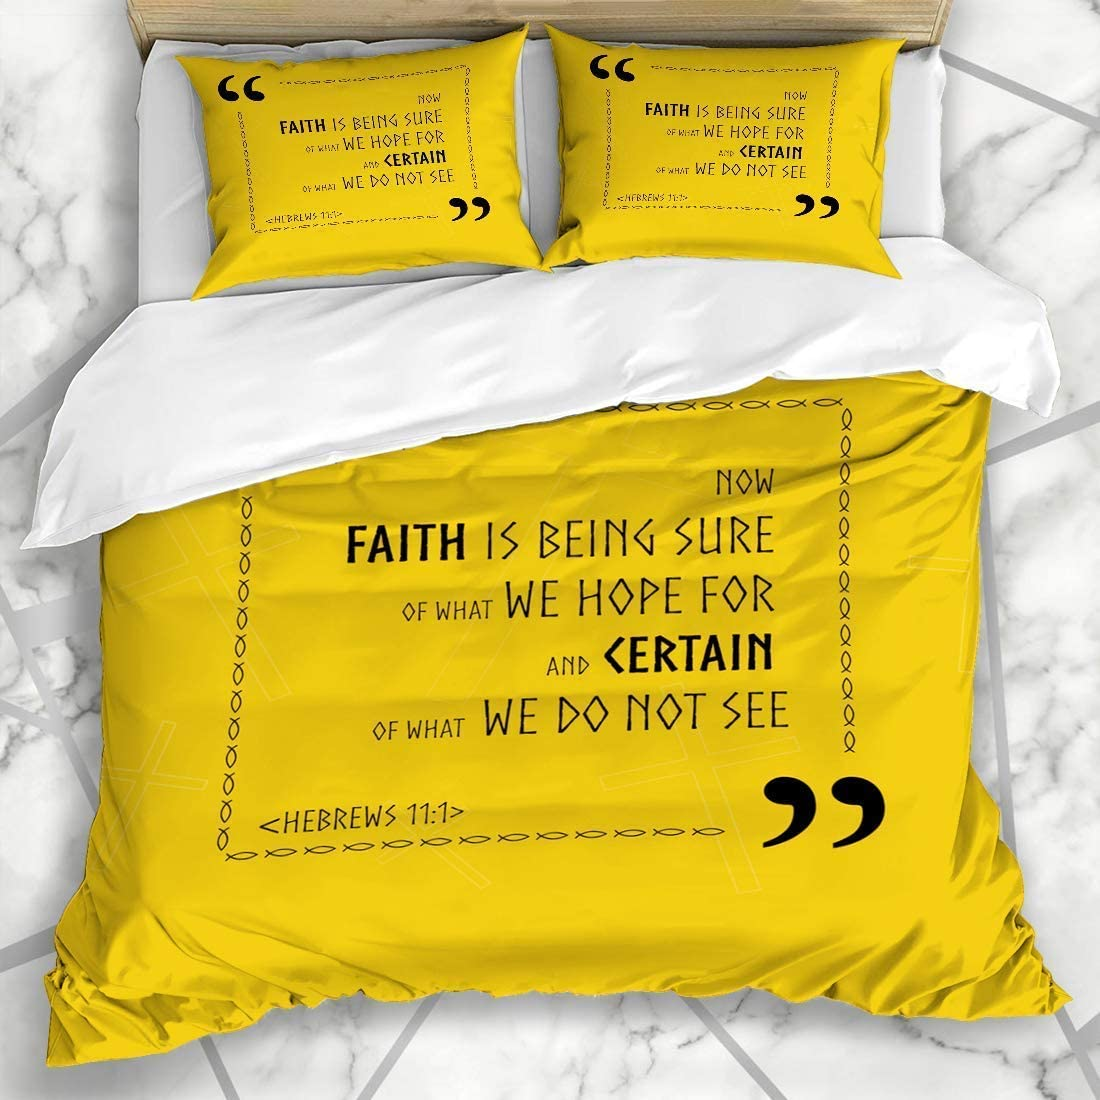 Duvet Cover Sets Jewish Verse Best Bible Quotes About Faith Holy Biblical Ancient Christ Christian Christianity Design Microfiber Bedding with 2 Pillow Shams Easy Care Anti-Allergic Soft SMO